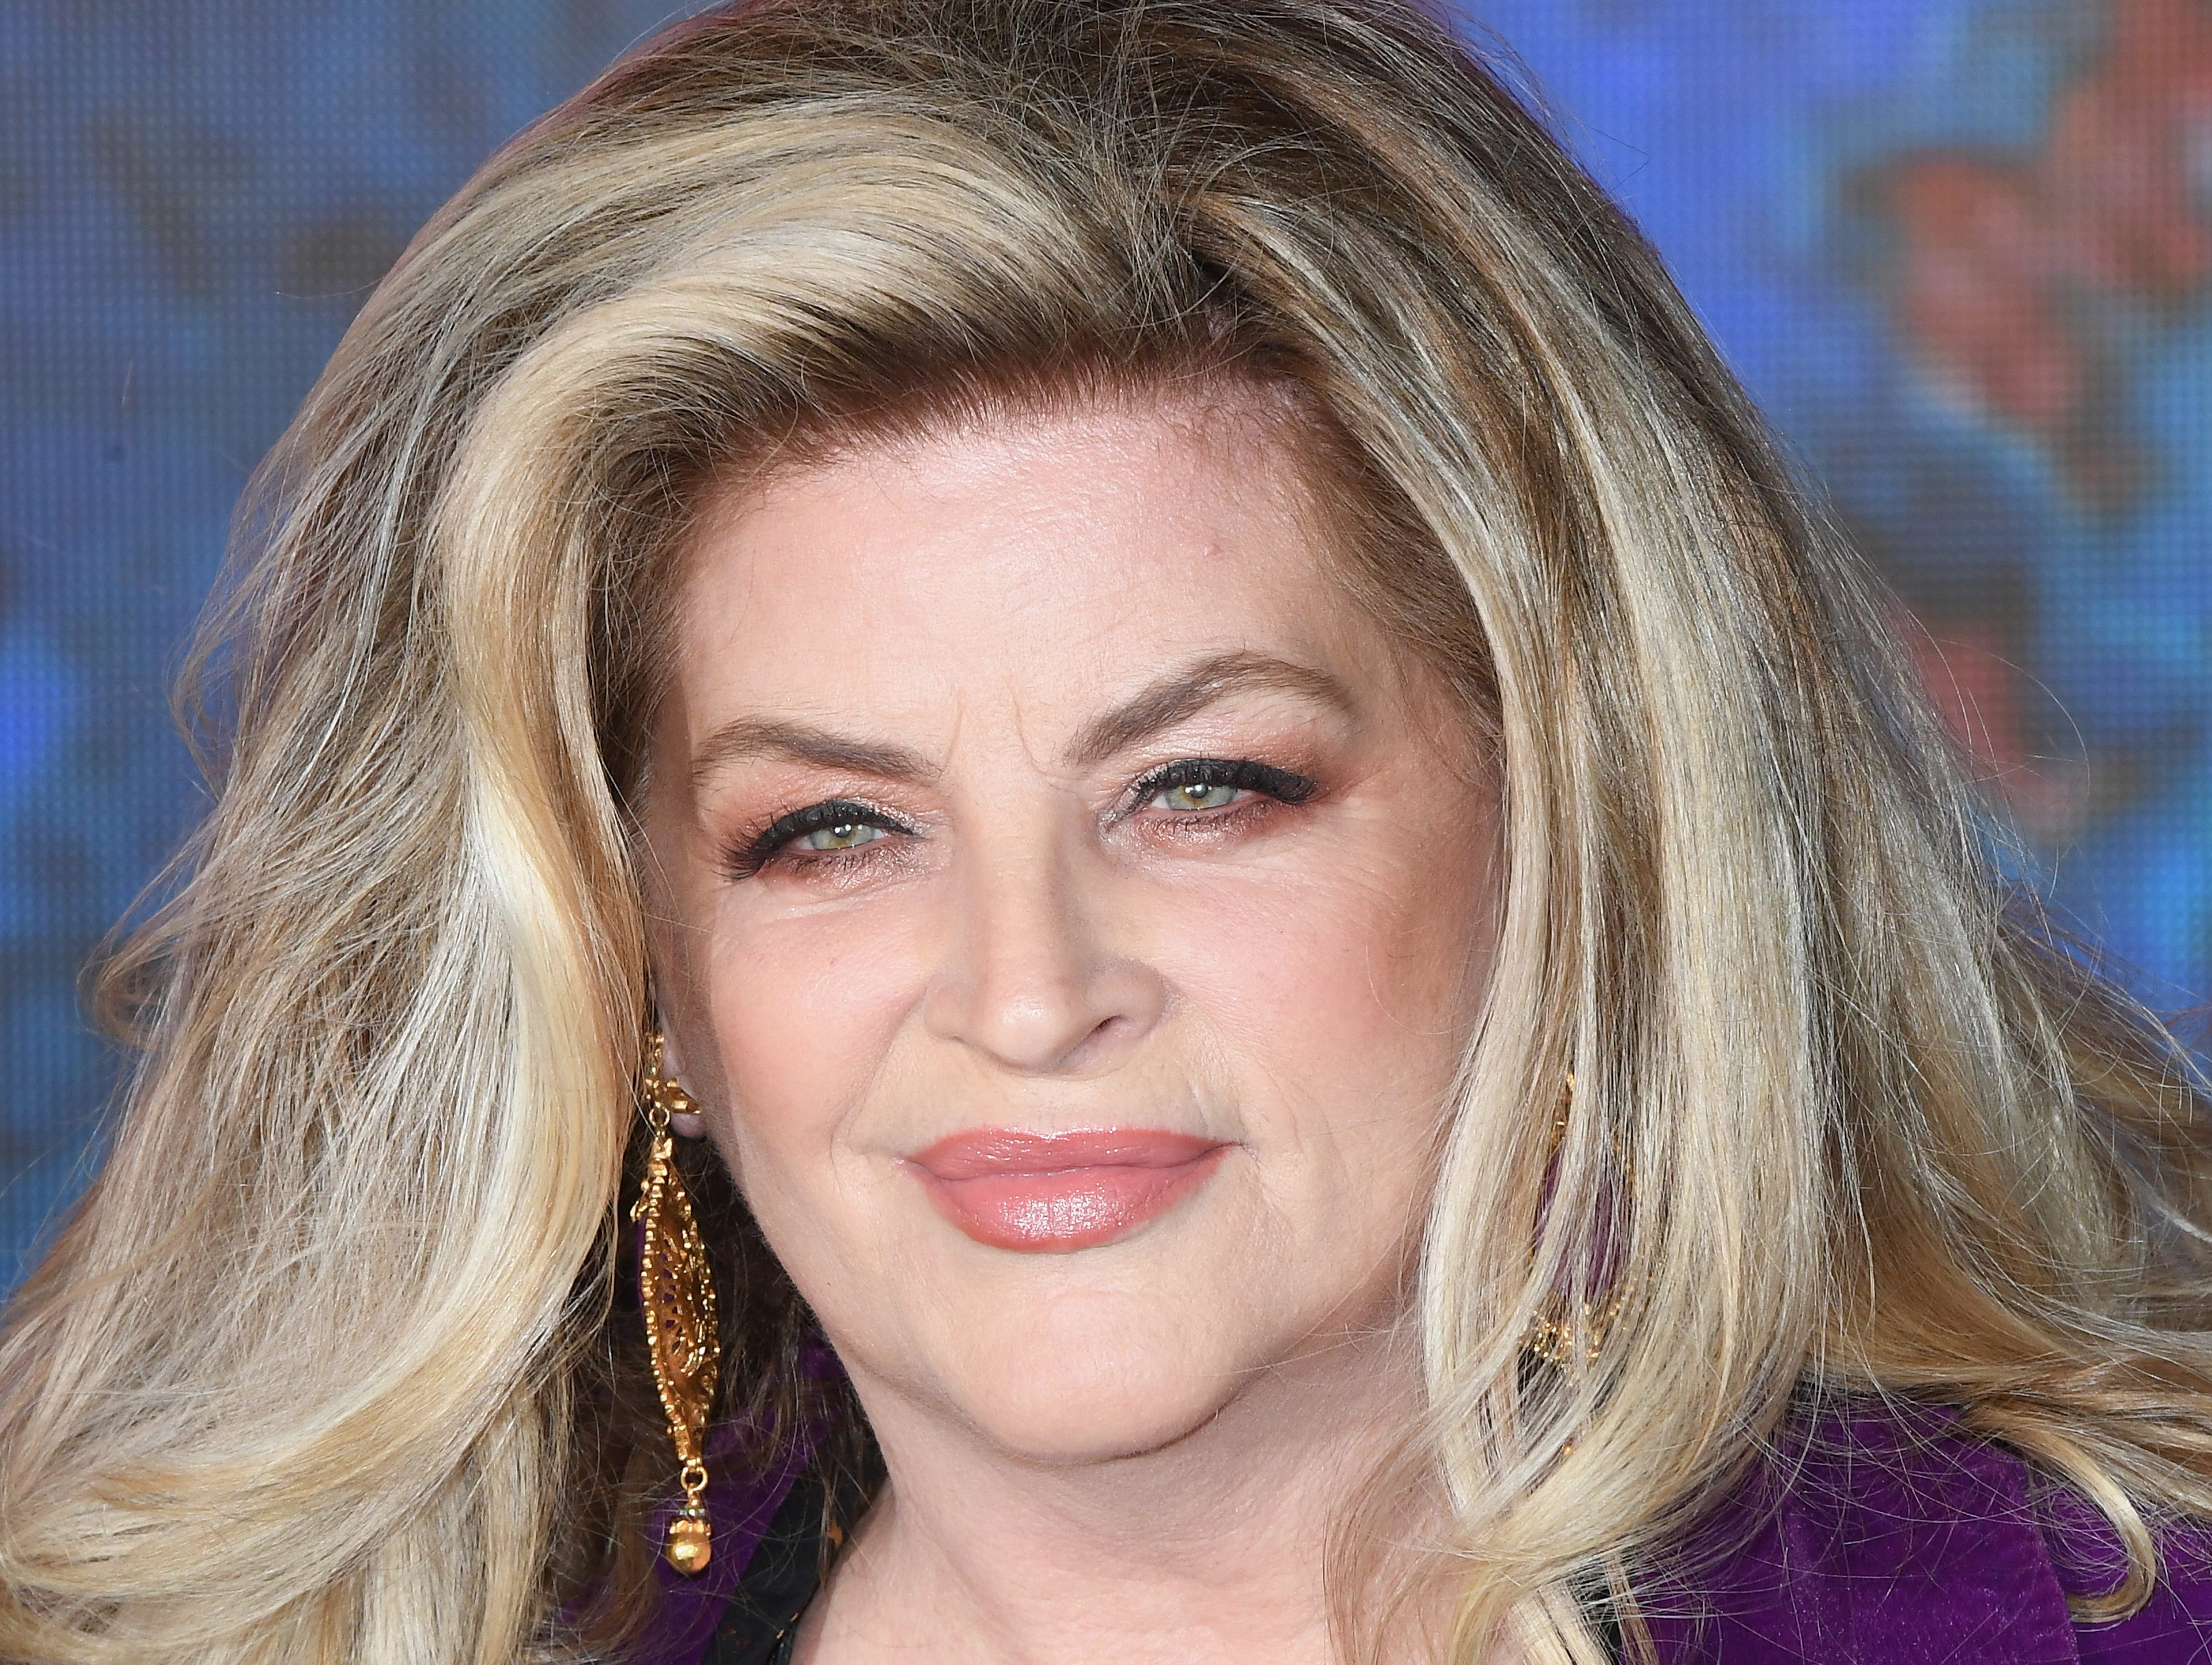 BOREHAMWOOD, ENGLAND - AUGUST 16:  Kirstie Alley enters the Celebrity Big Brother house at Elstree Studios on August 16, 2018 in Borehamwood, England.  (Photo by Stuart C. Wilson/Getty Images) ORG XMIT: 775210087 ORIG FILE ID: 1017791726